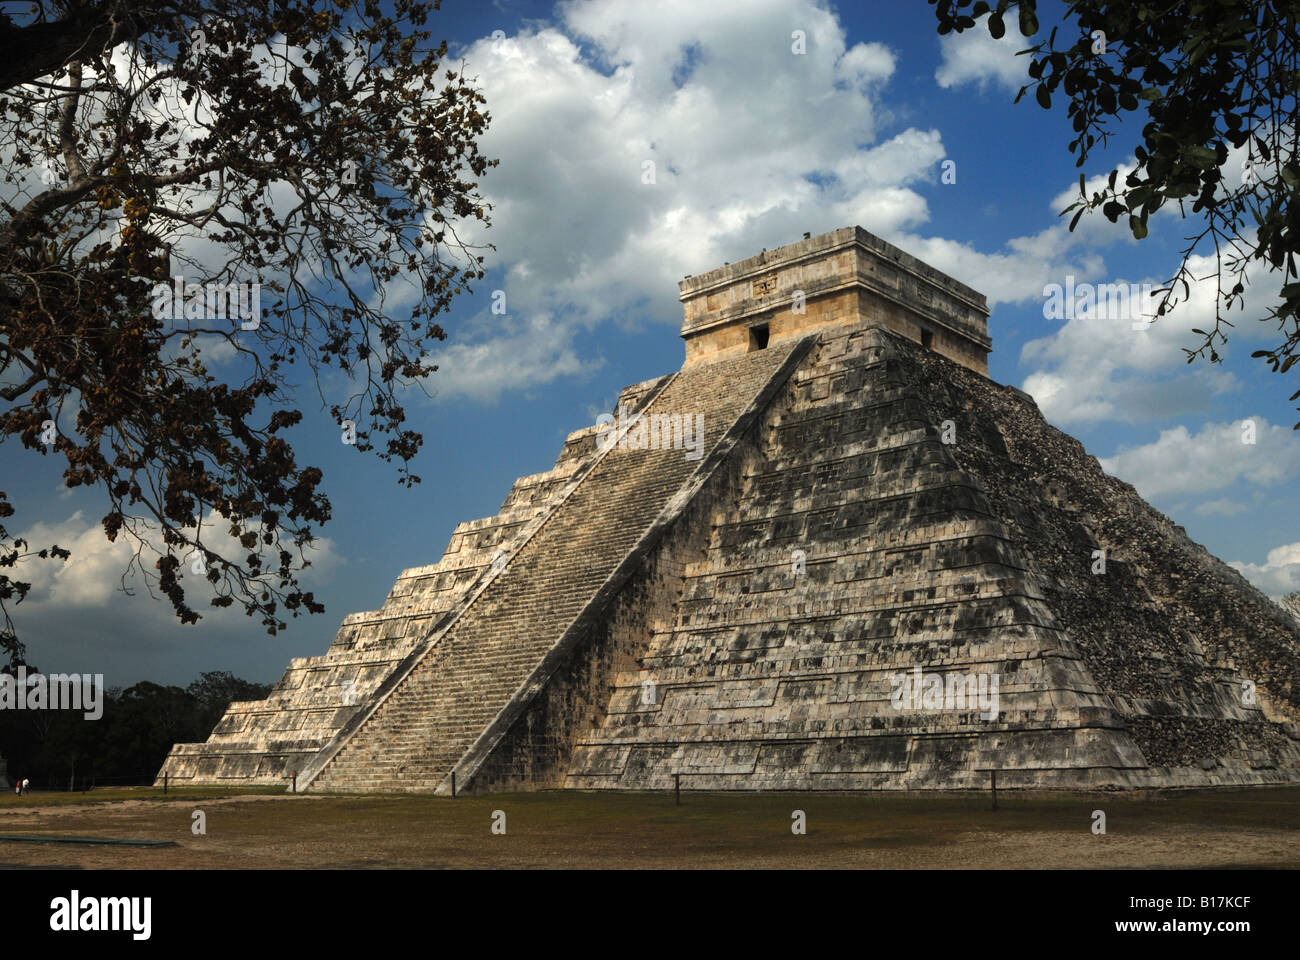 The Mayan temple of Chitchen Itza, Mexico - Stock Image